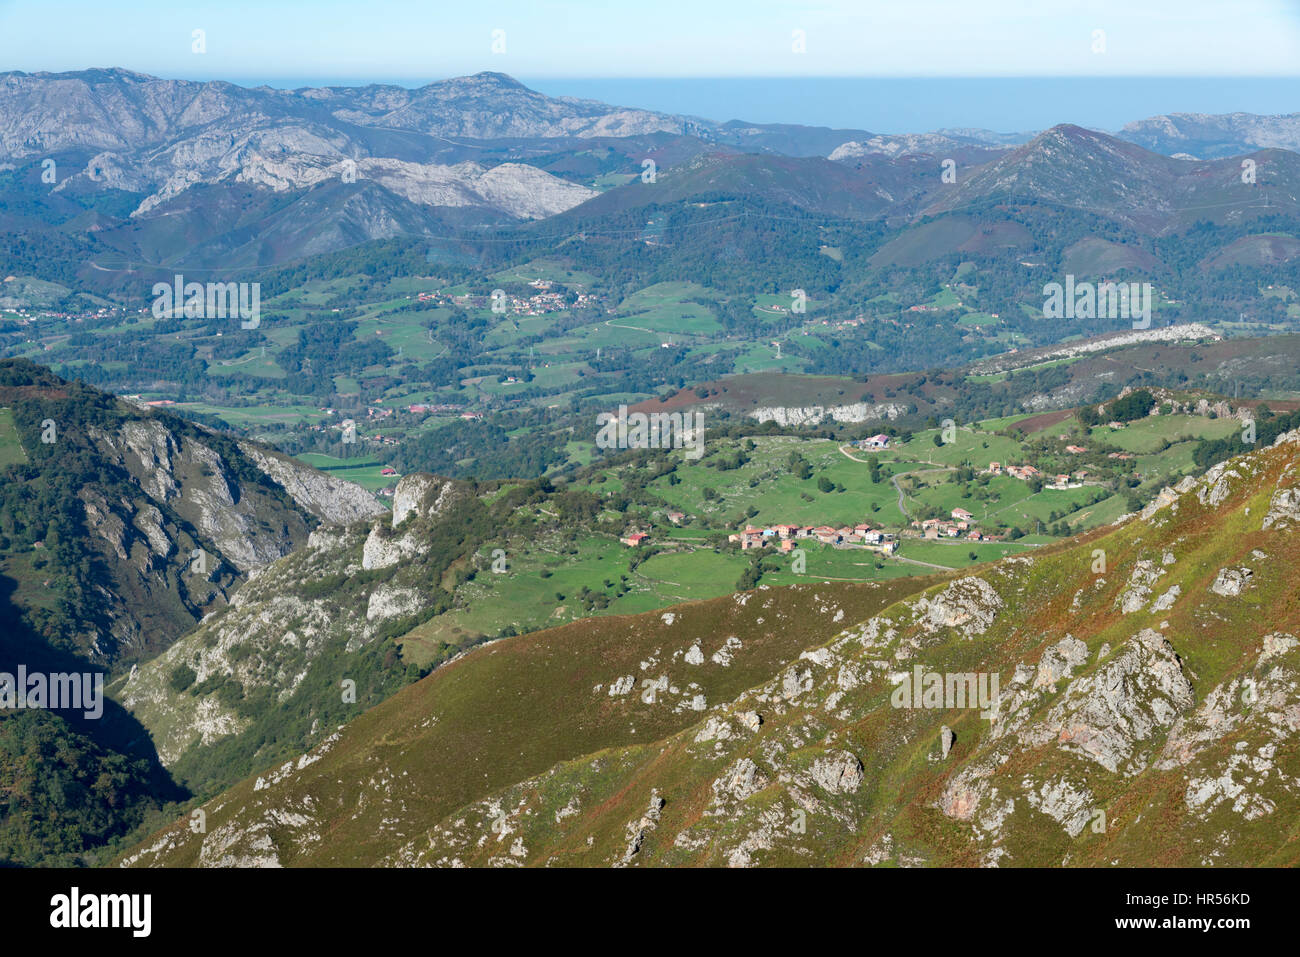 A landscape view of limestone hills and mountains with houses, villages and hill farms in the Picos de Europa Asturias - Stock Image